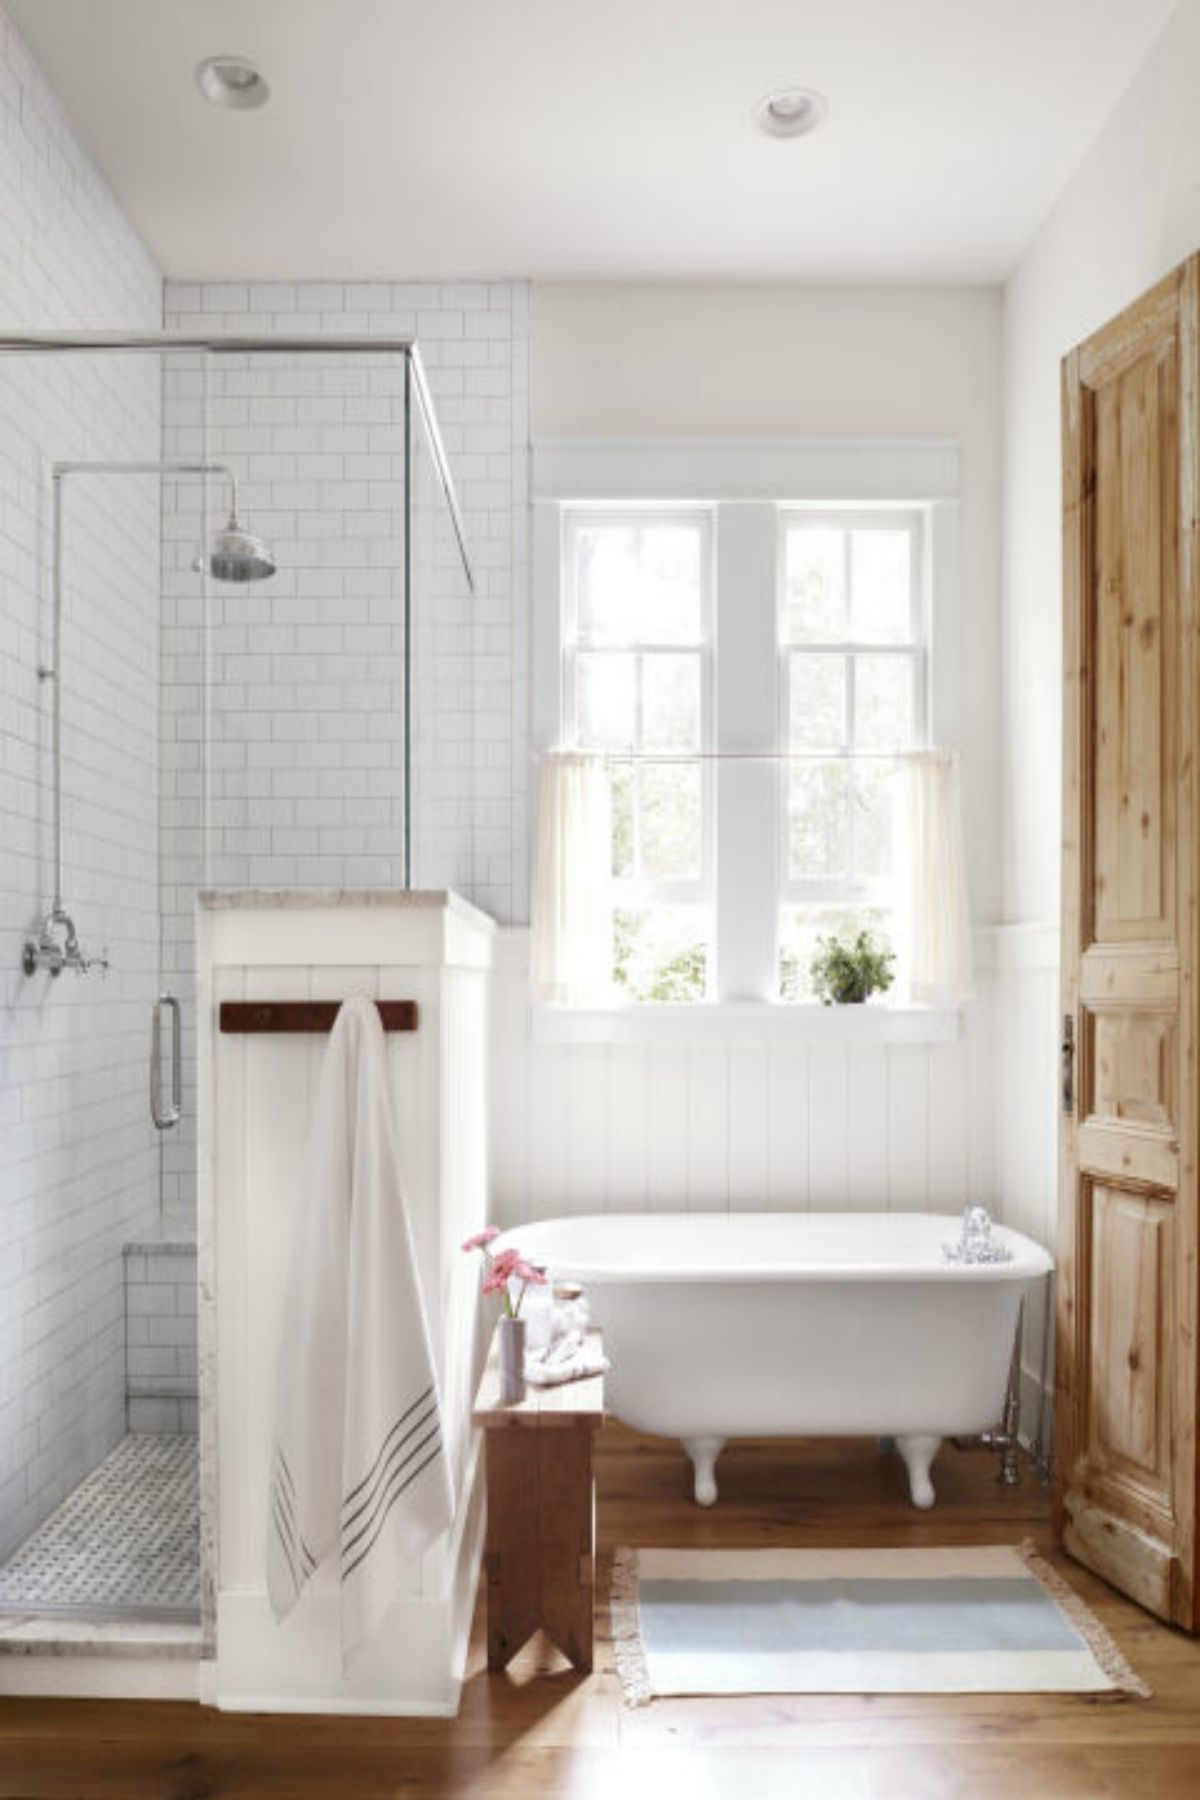 27 Ways to Decorate Your Bathroom With White | Natural light